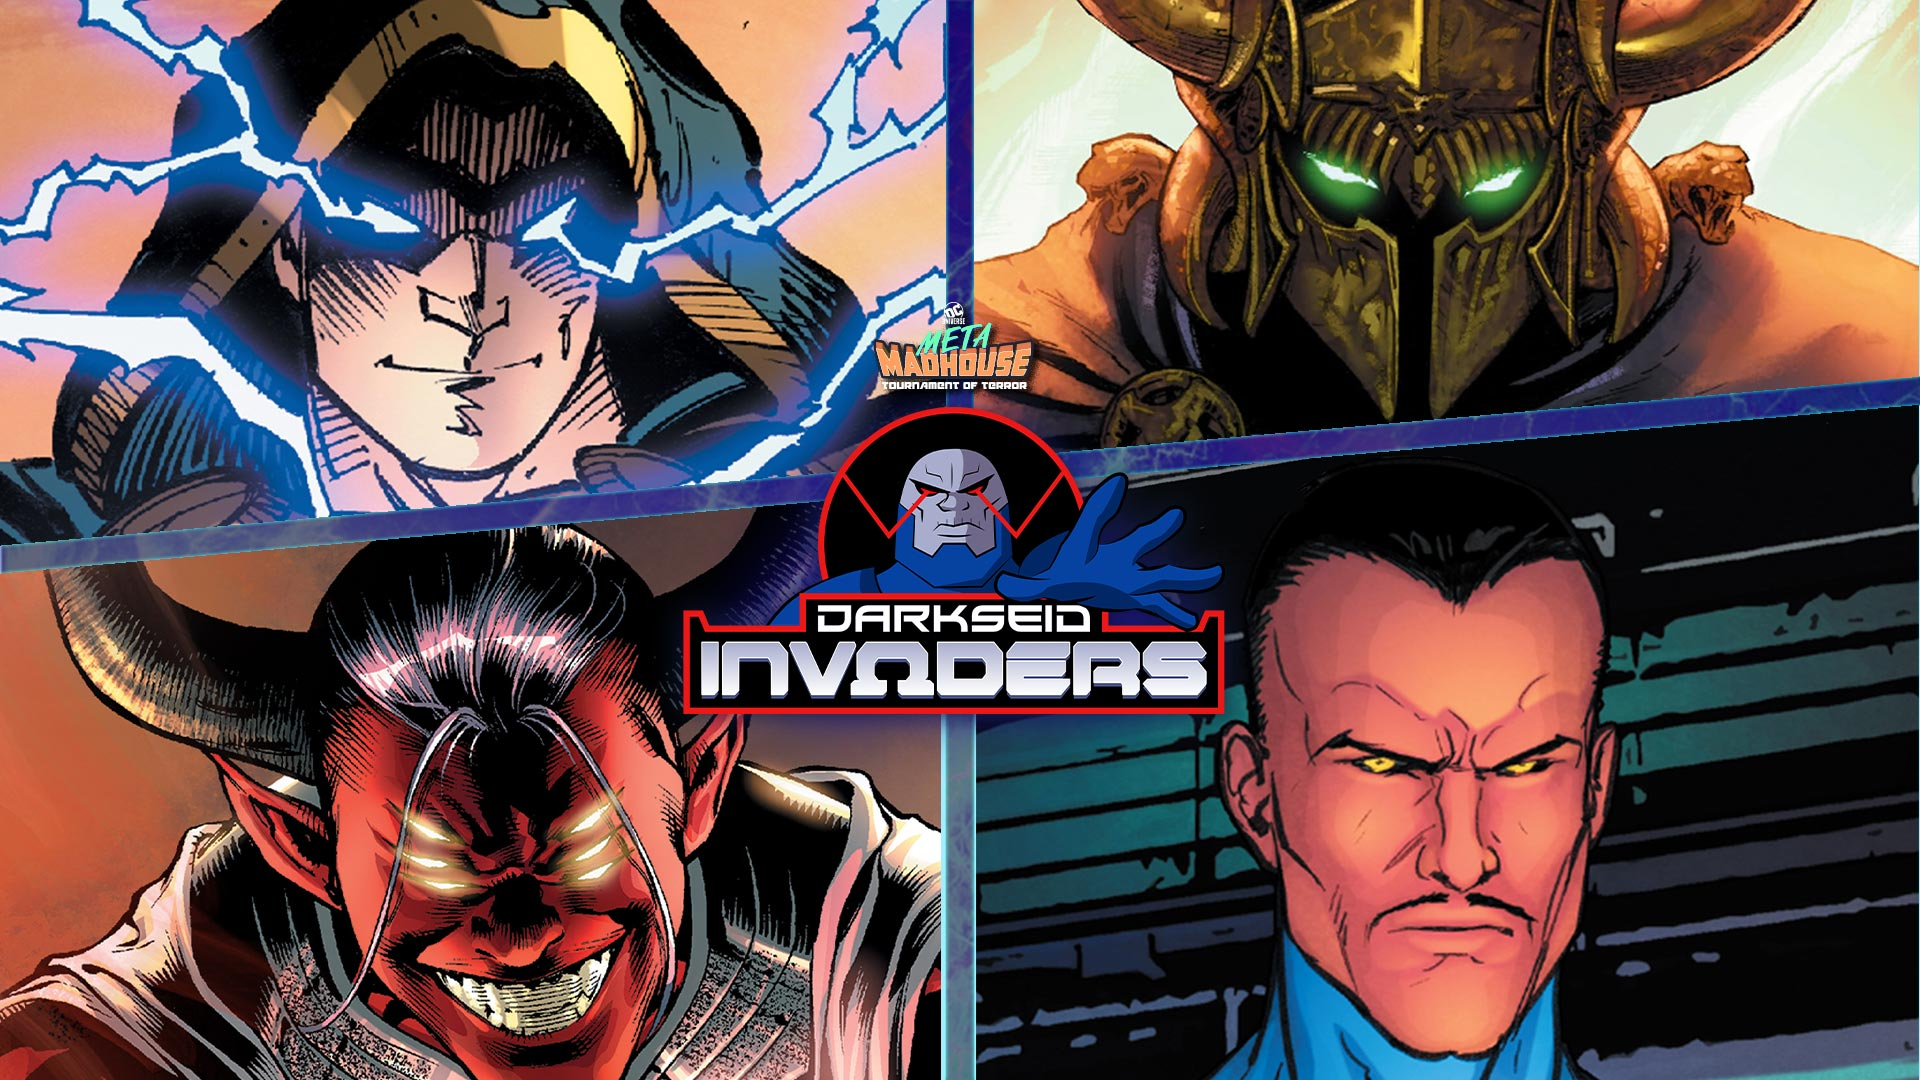 MM_DARKSEID-NEWS_4-playershero-c2.jpg